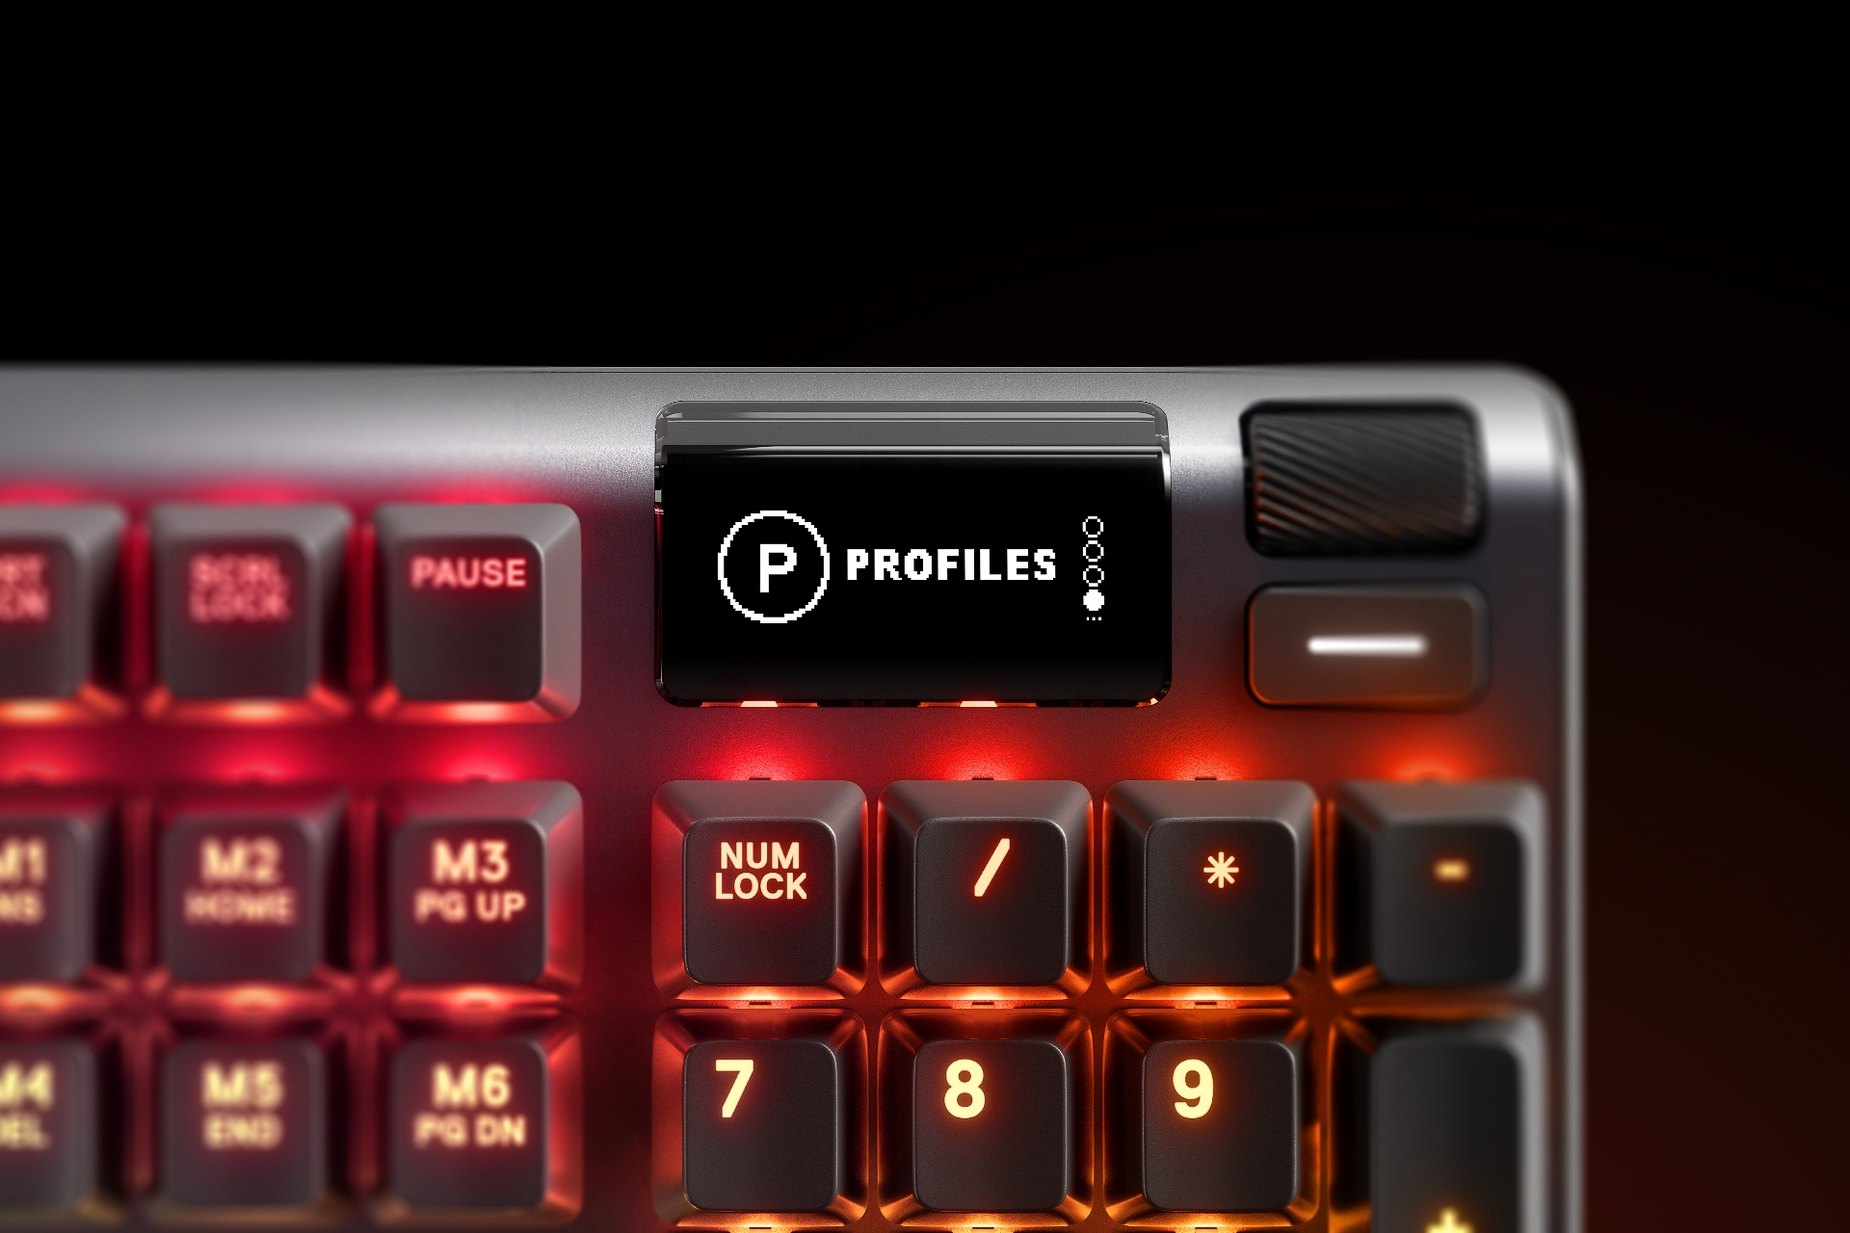 Zoomed in view of the multimedia and settings controls/volume roller on the Nordic - Apex 7 (Red Switch) gaming keyboard